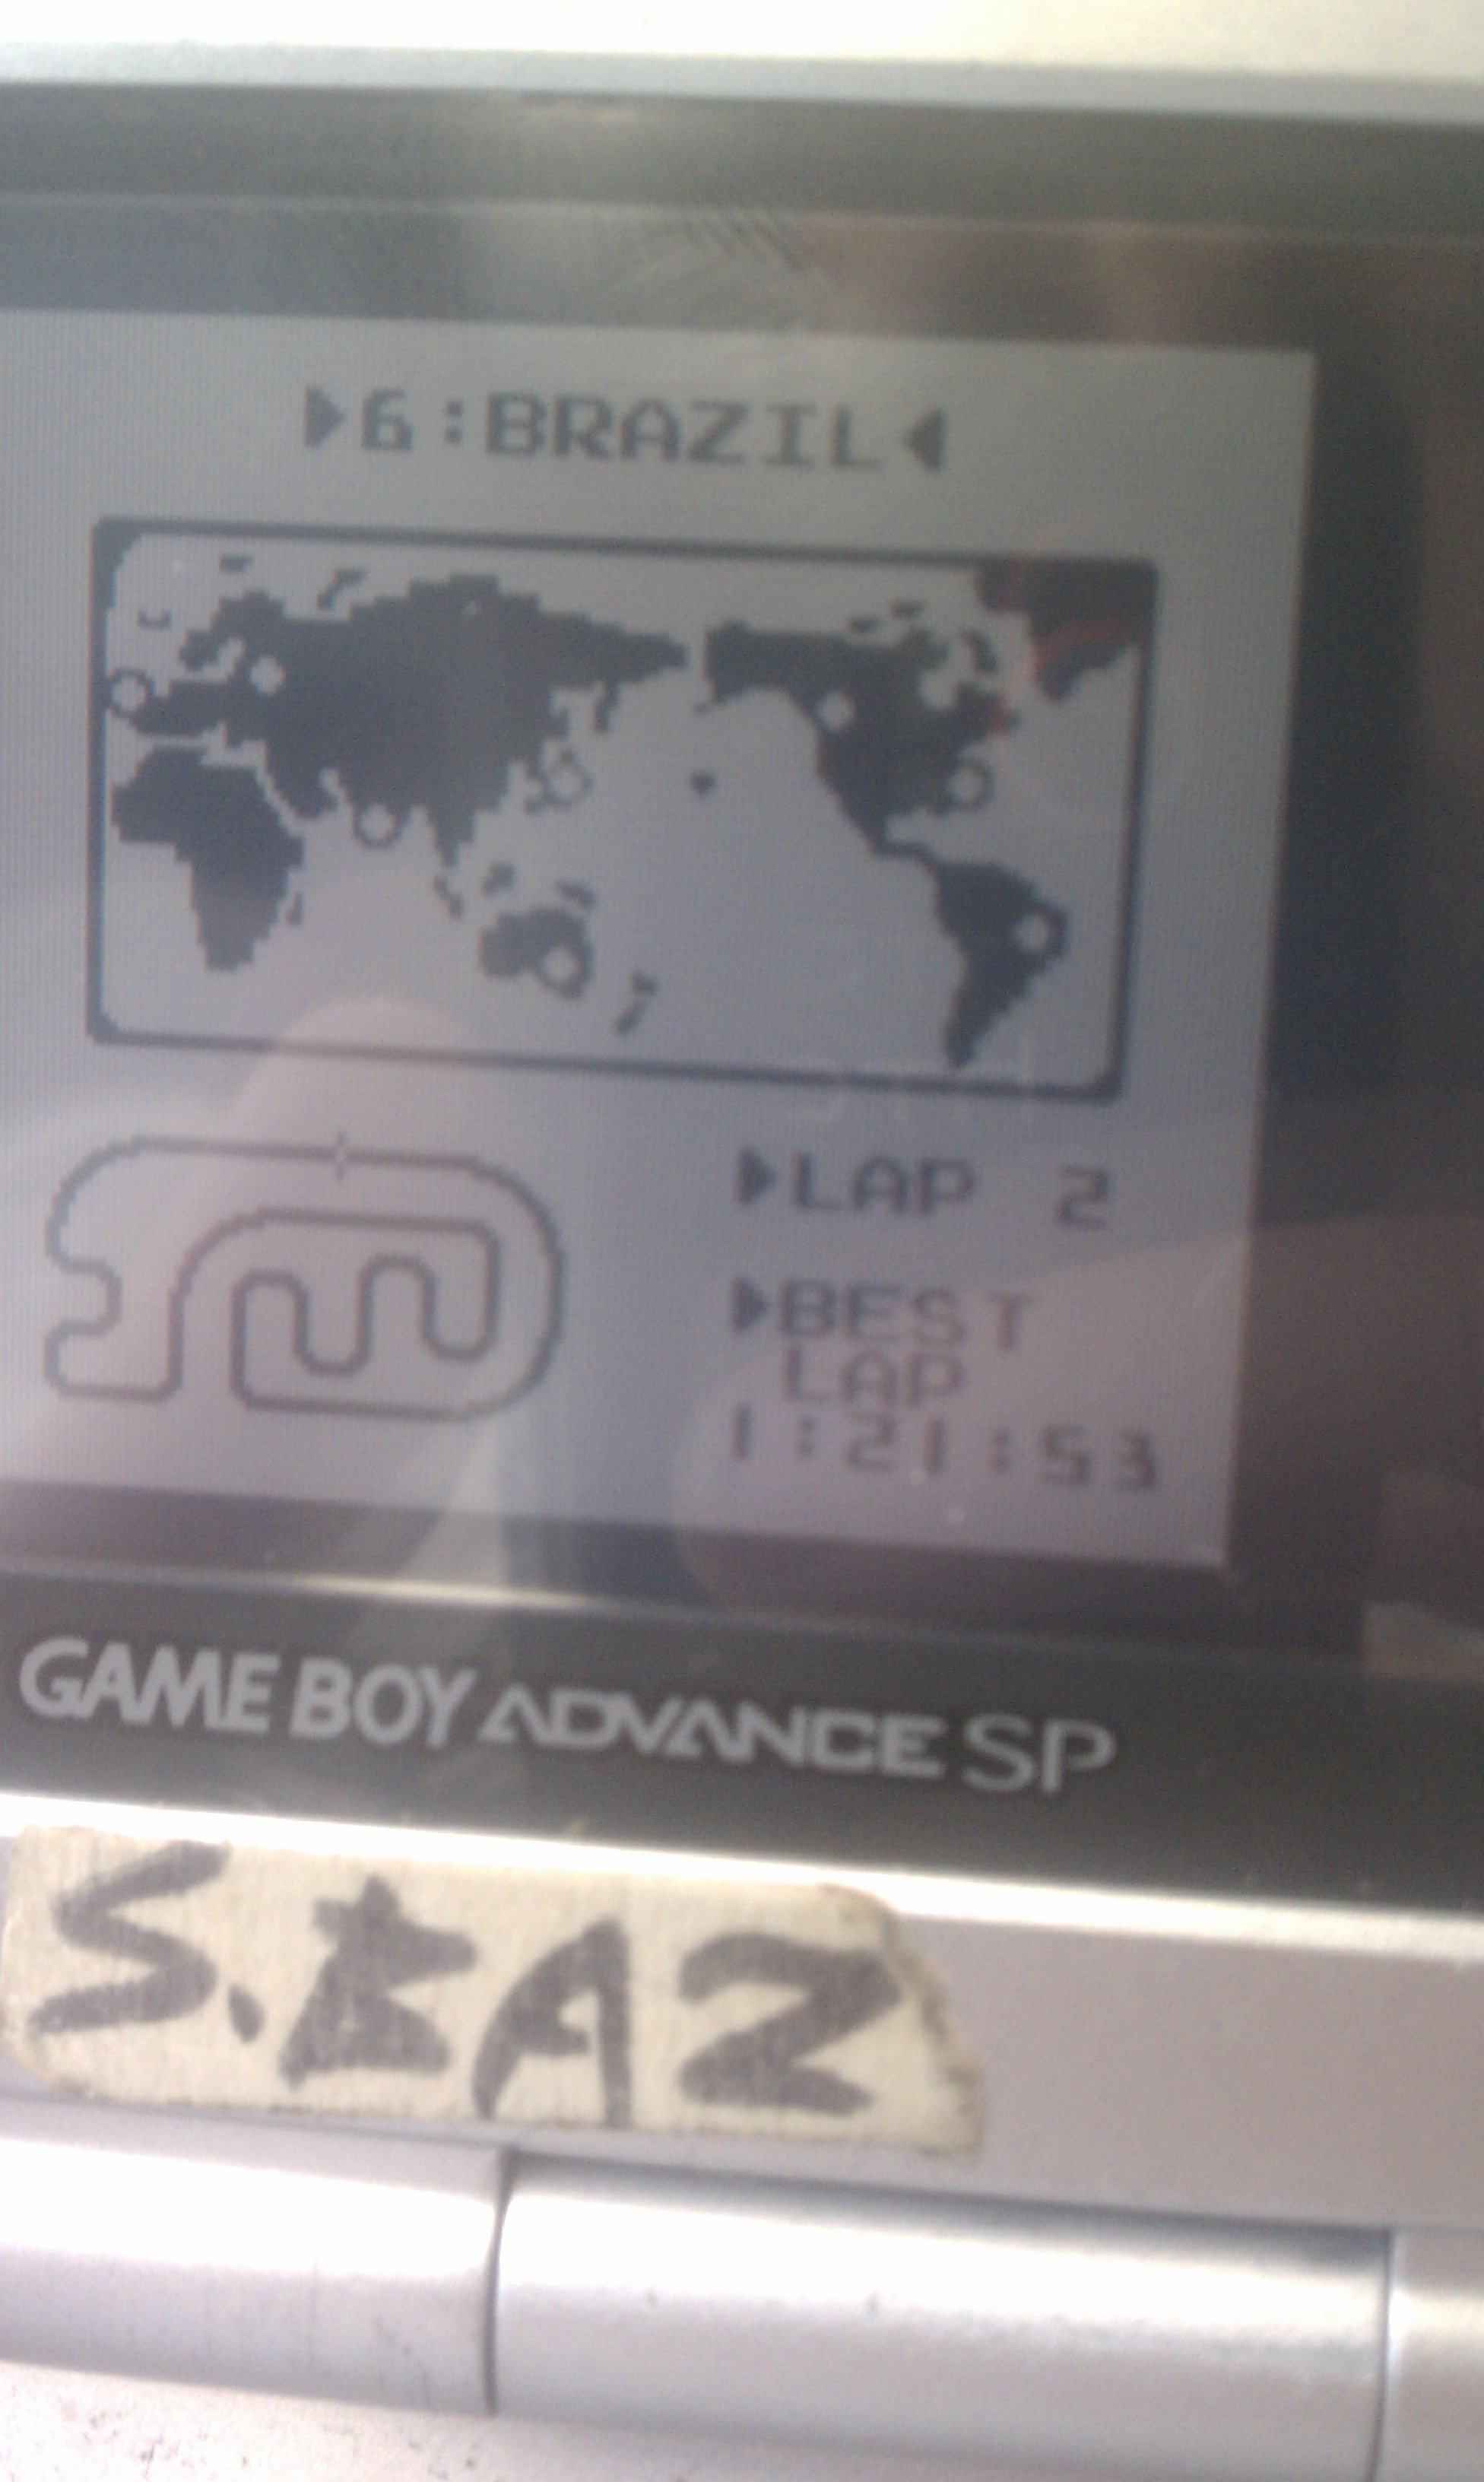 F-1 Race: Time Trials: Single: Brazil [Best Lap] time of 0:01:21.53